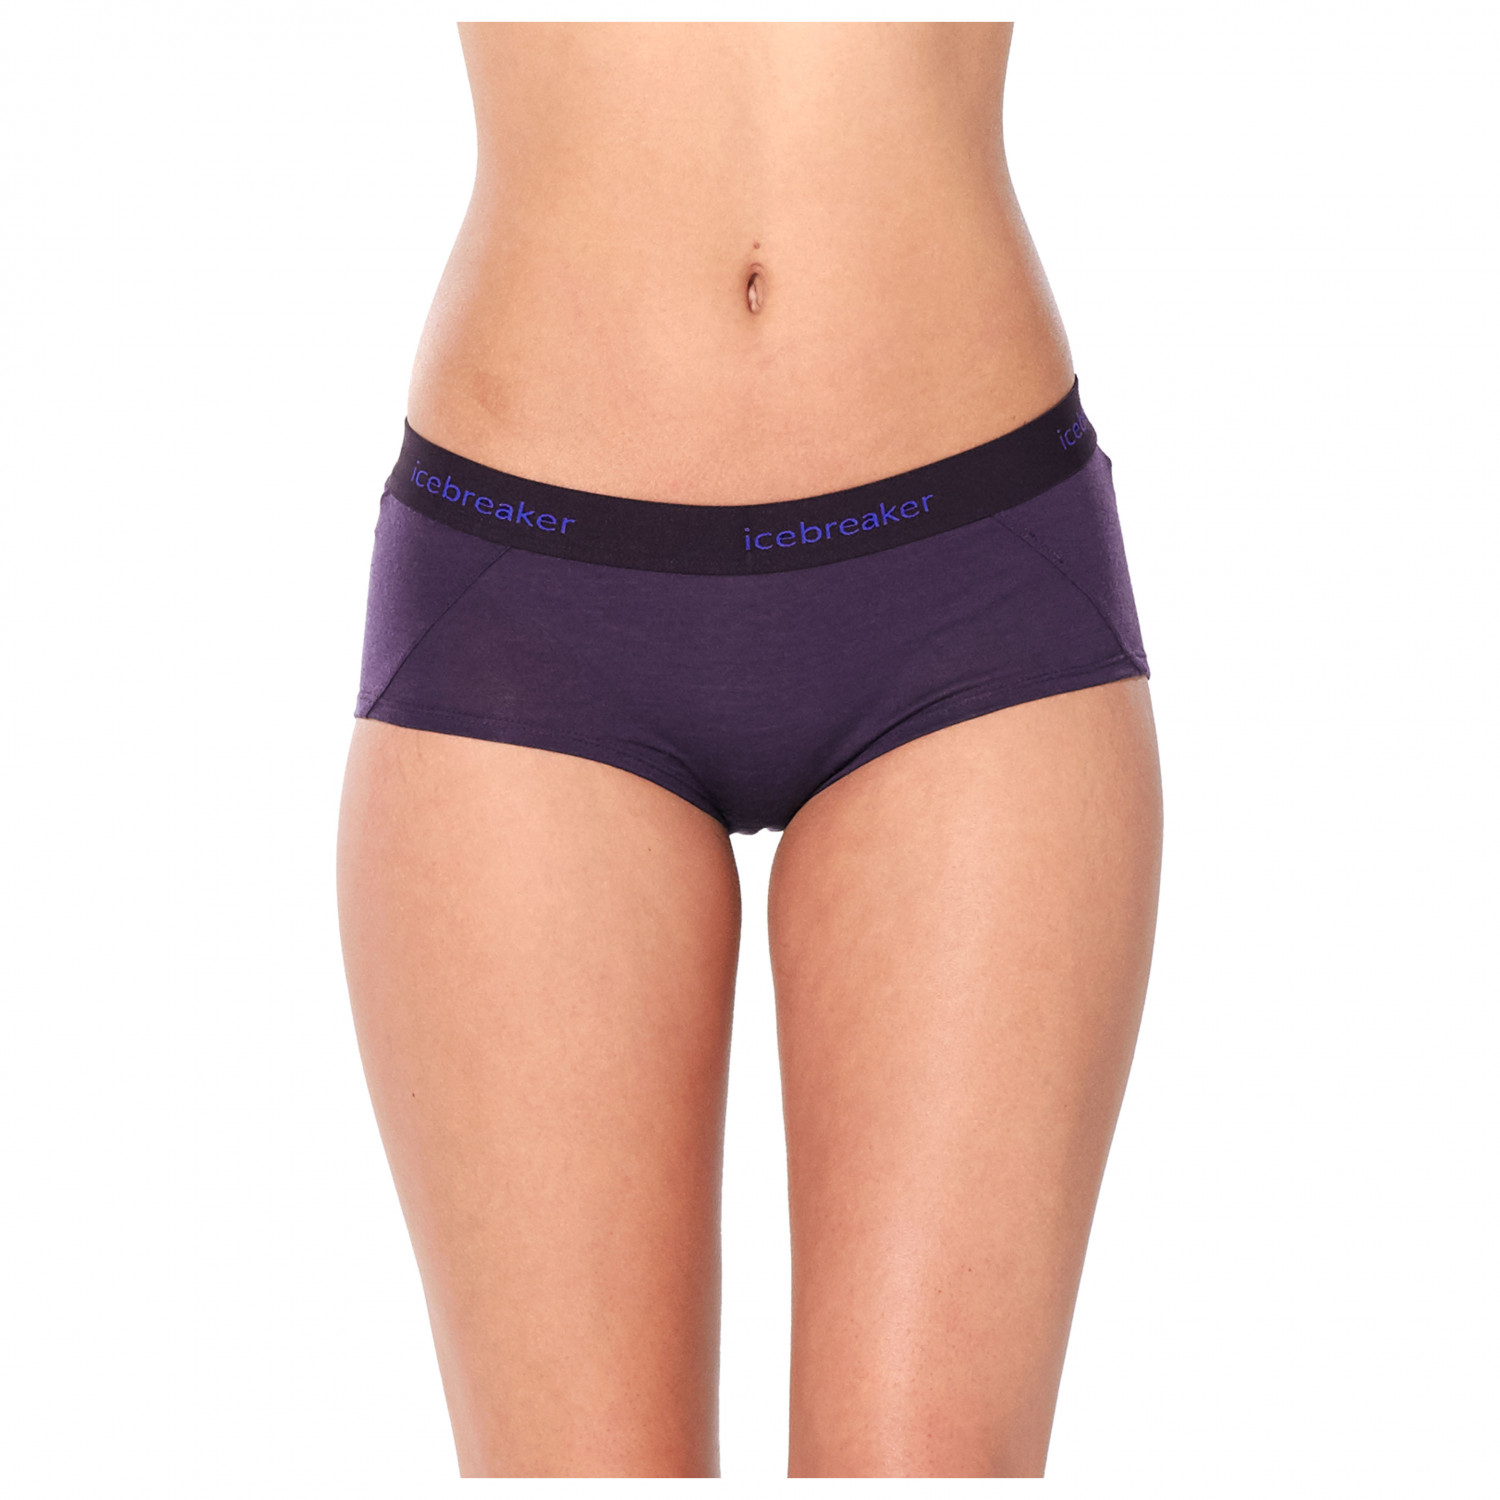 Icebreaker Sprite Hot Pants Merino Base Layers Women S